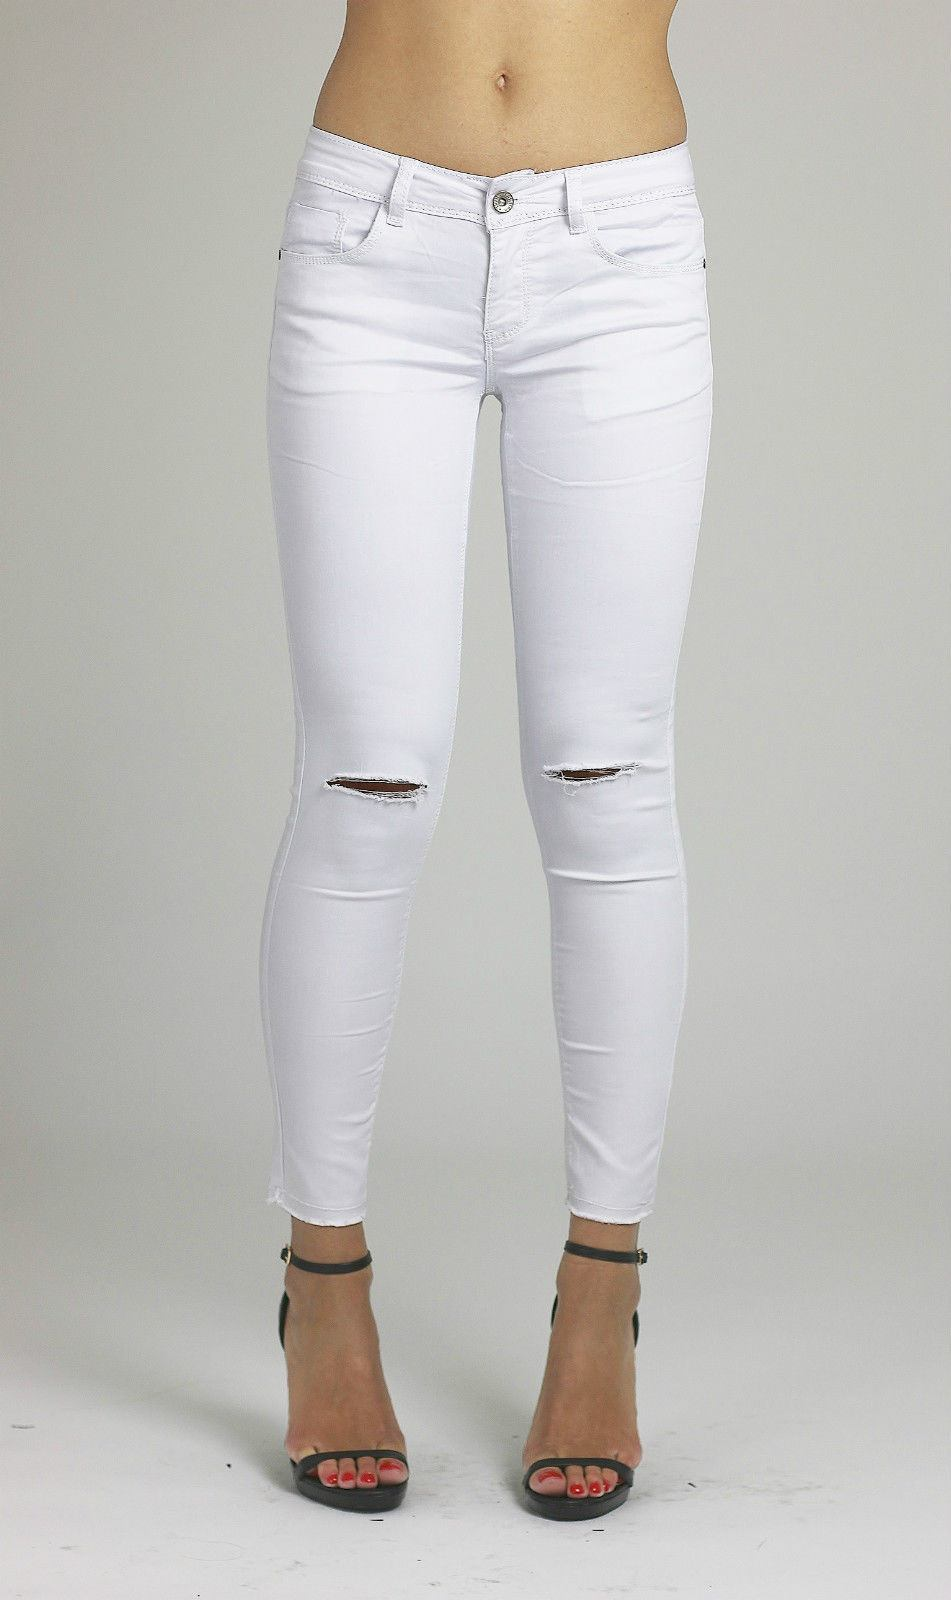 Ladies ripped knee skinny jeans – Global fashion jeans collection